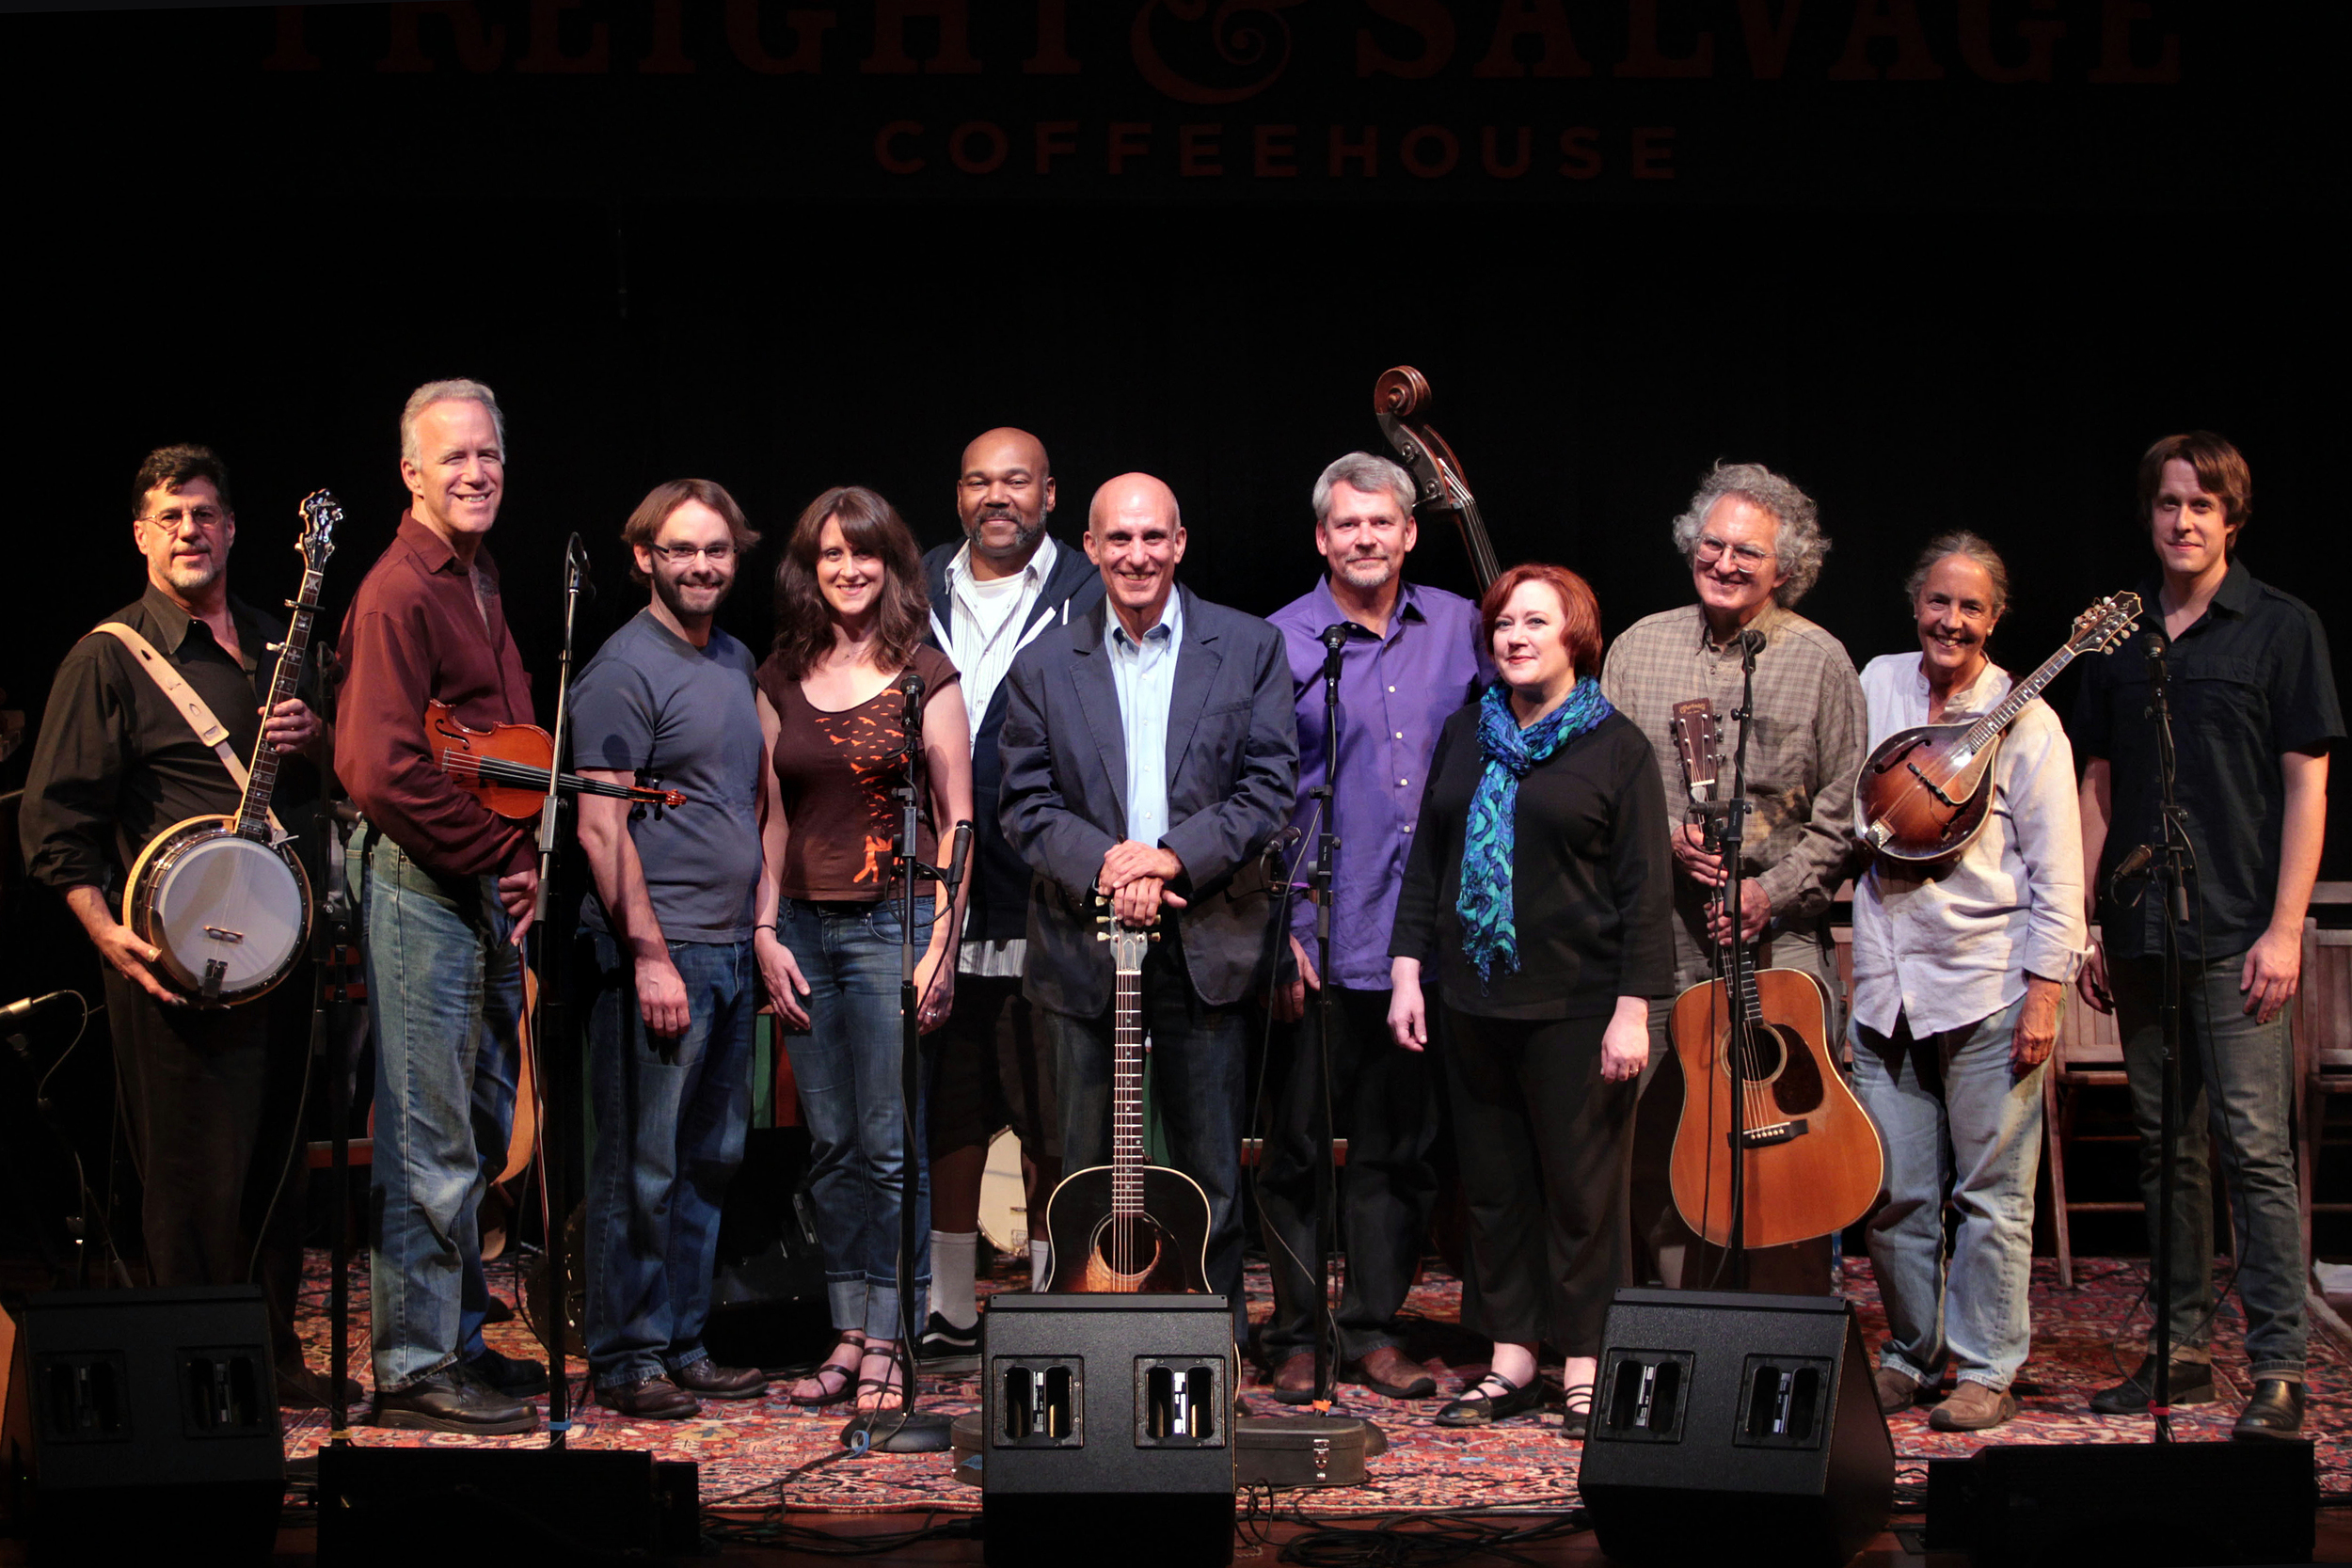 Freight & Salvage Company with Peter Glazer, center (July 2012, photo by Ray Lopez)